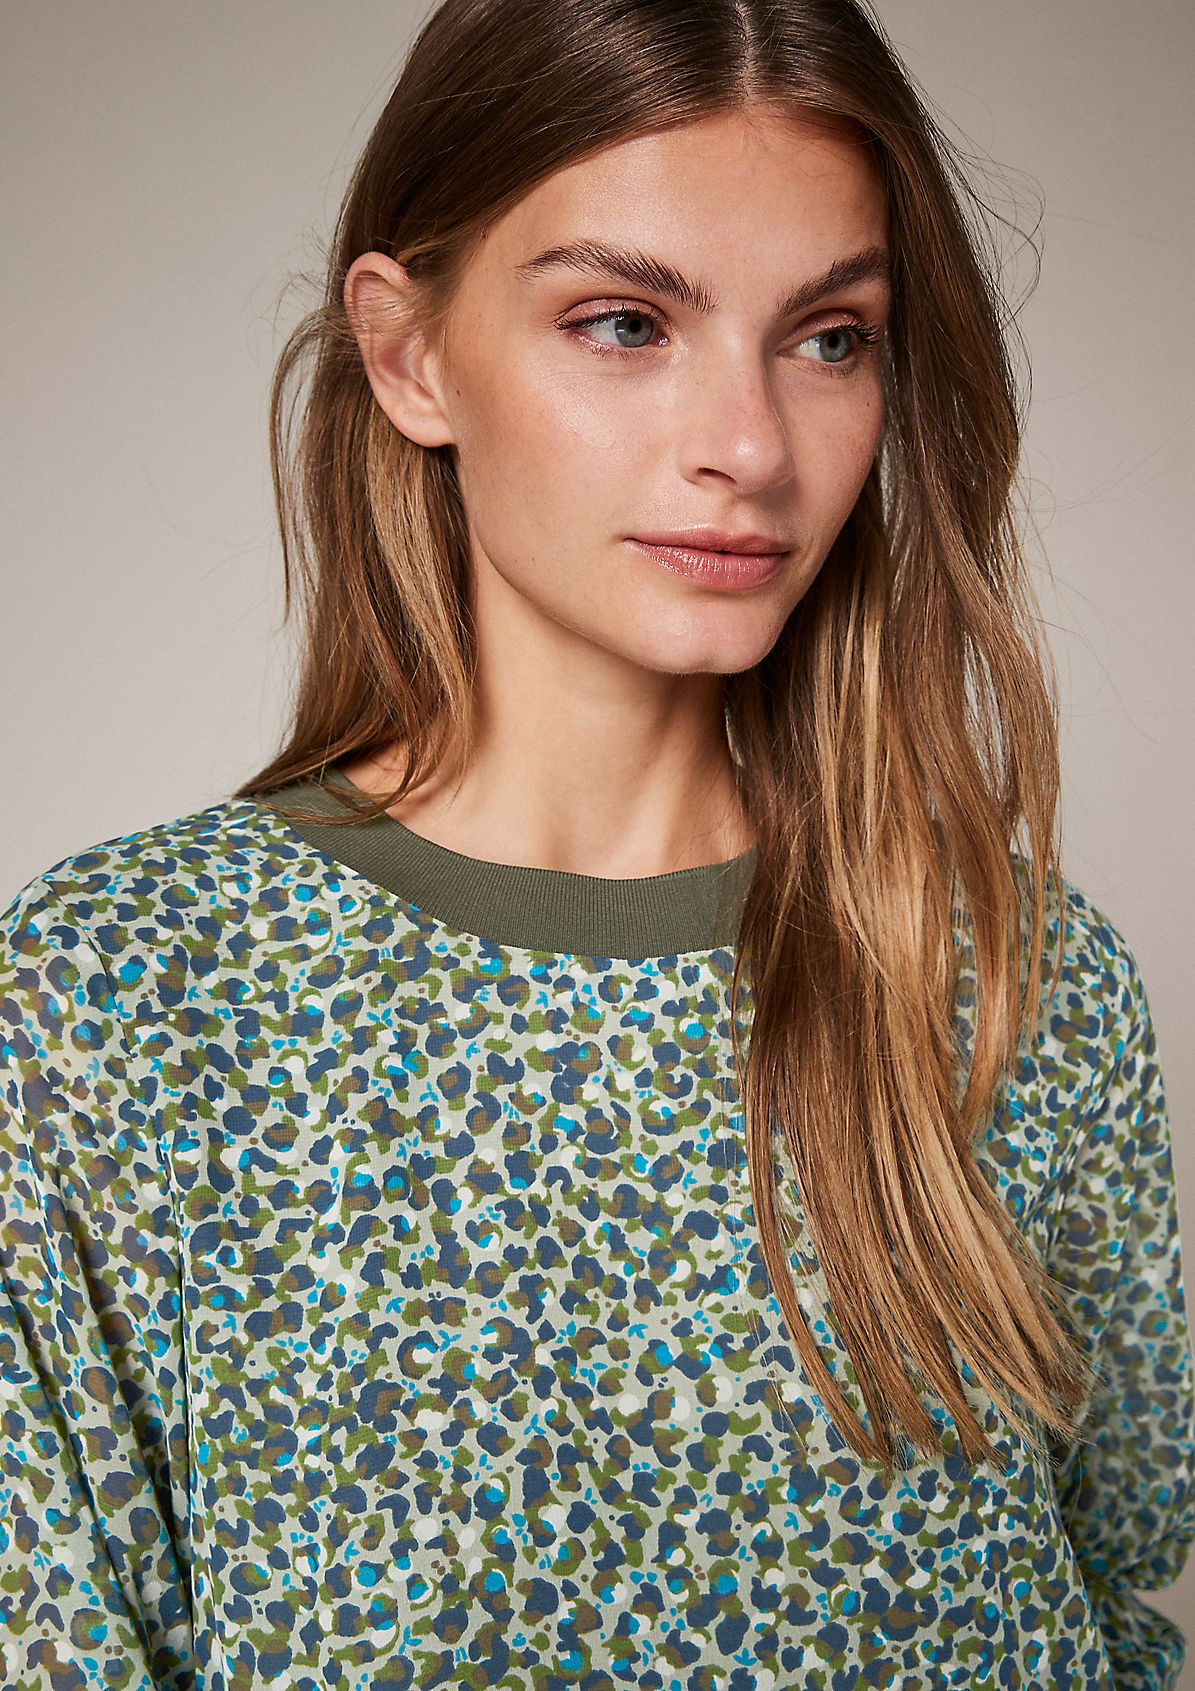 Musterbluse mit Ripp-Details